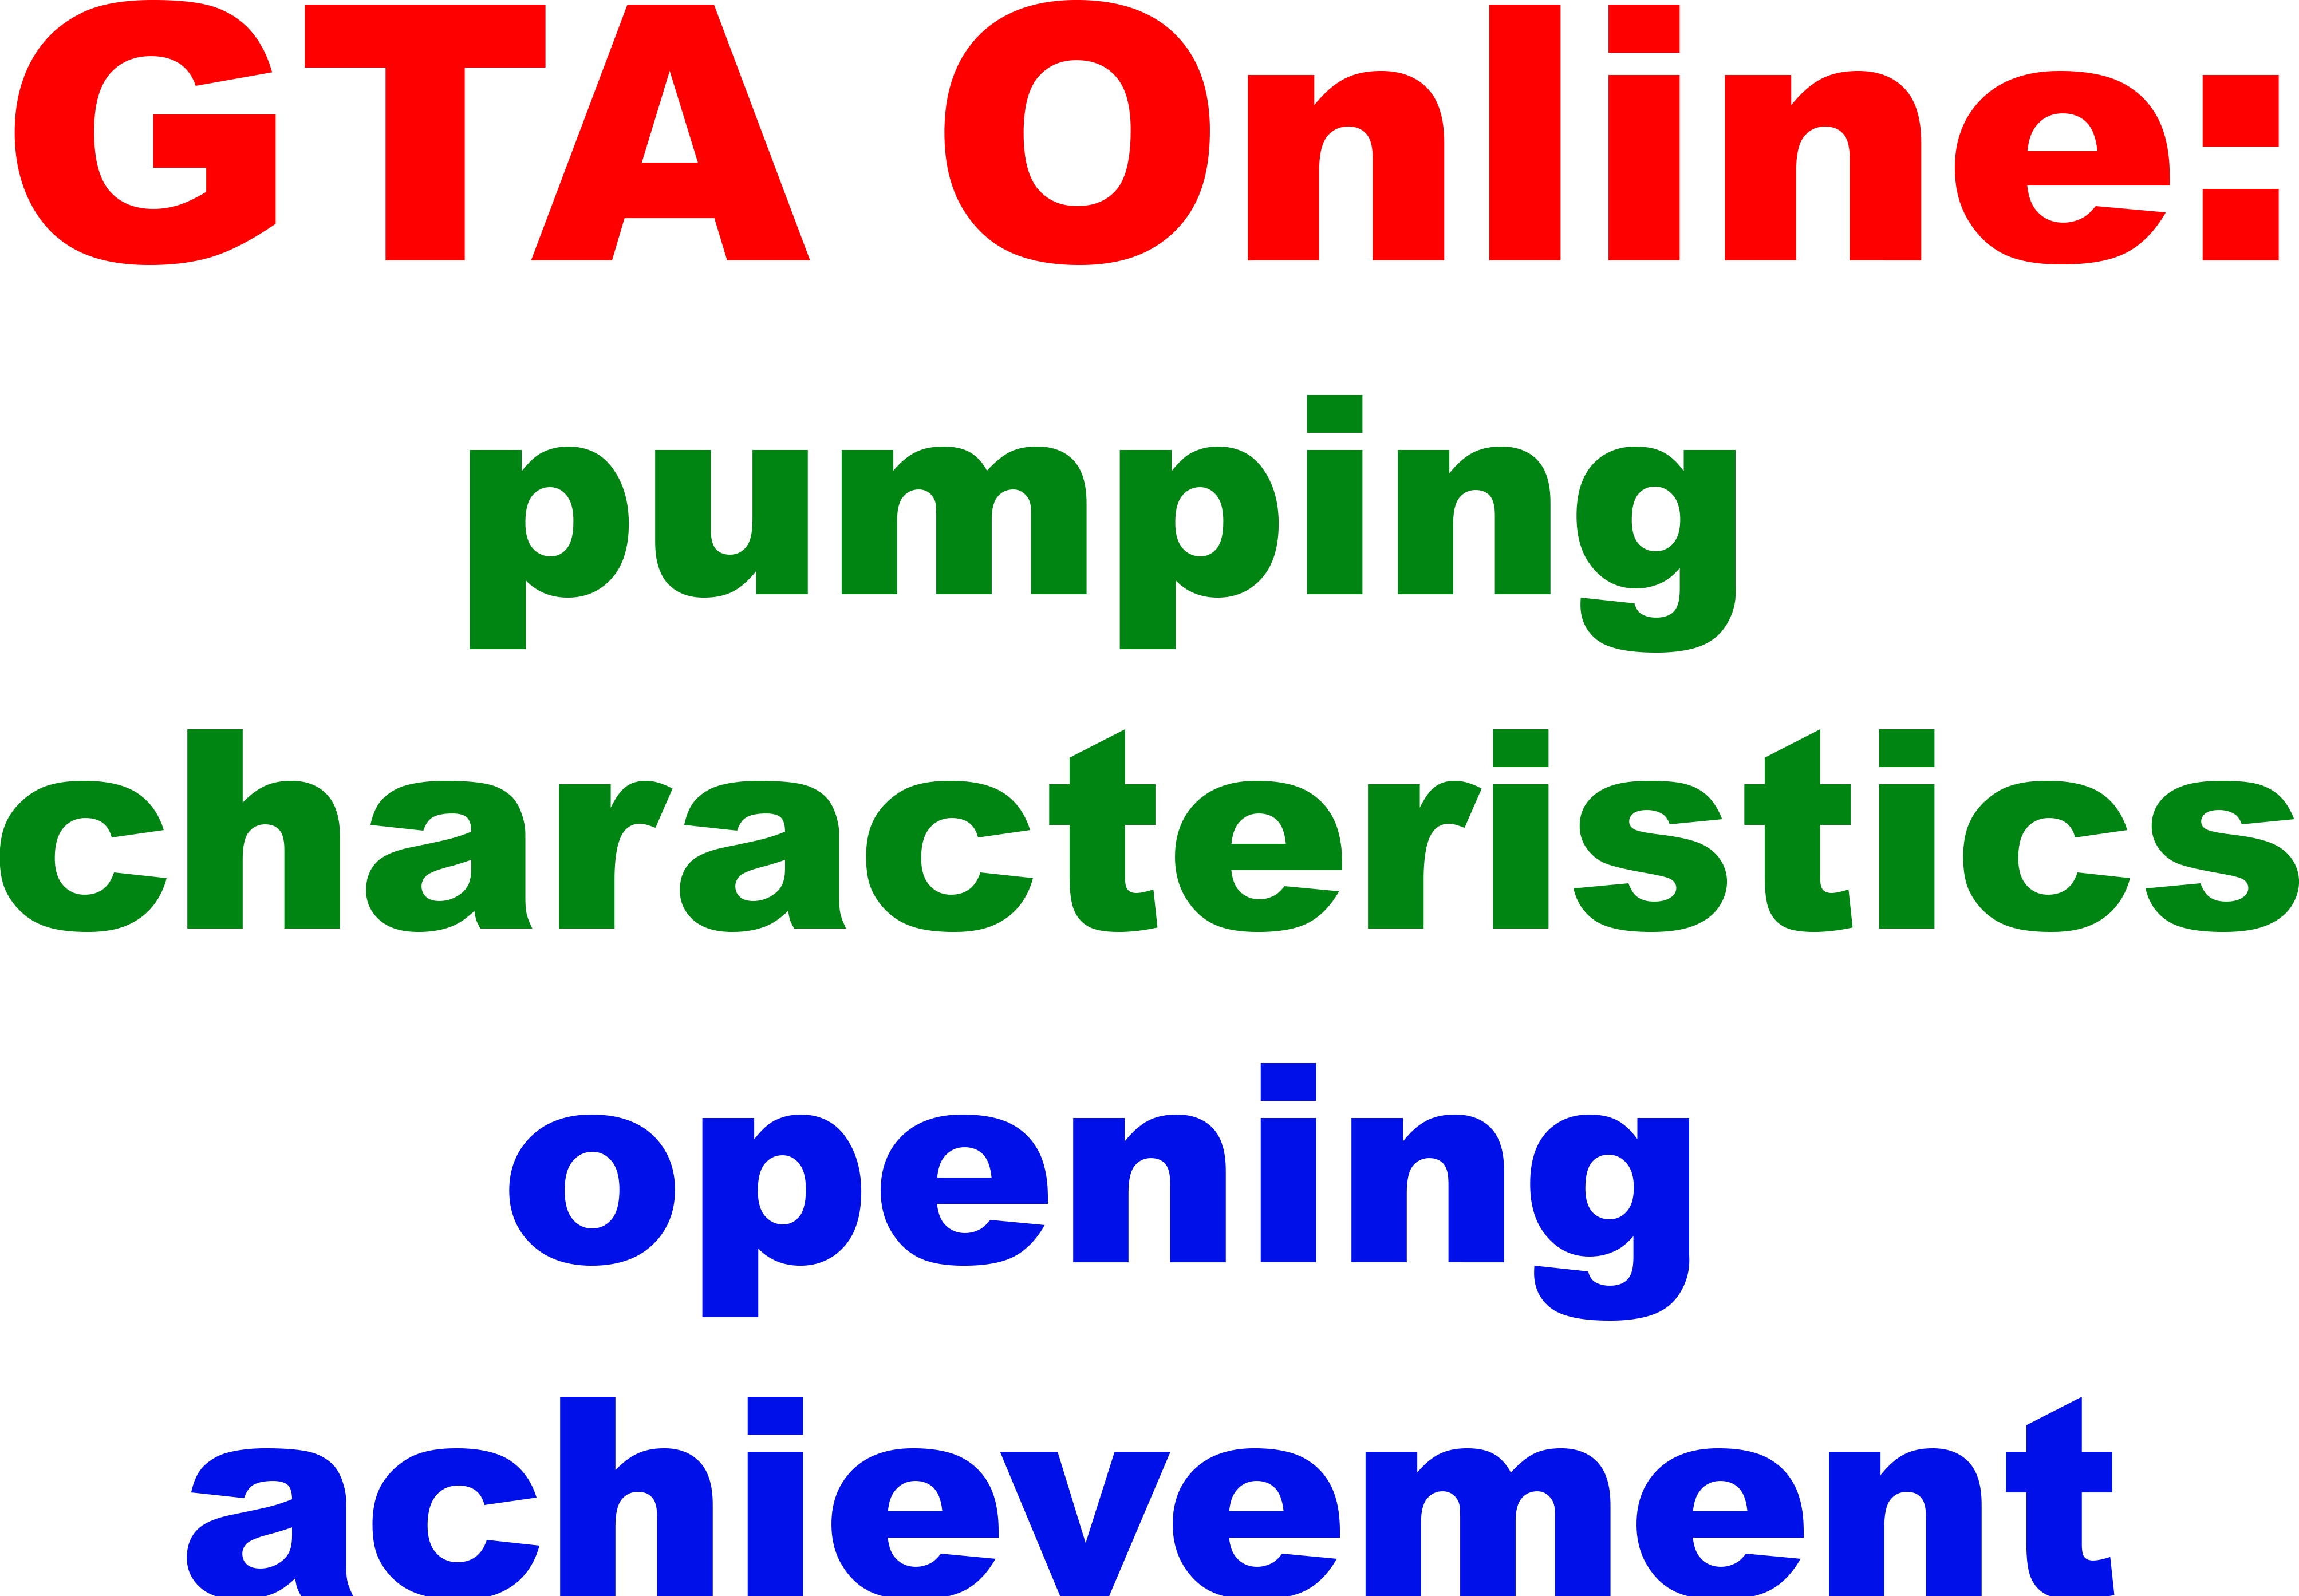 GTA Online:pumping characteristics, opening achievement